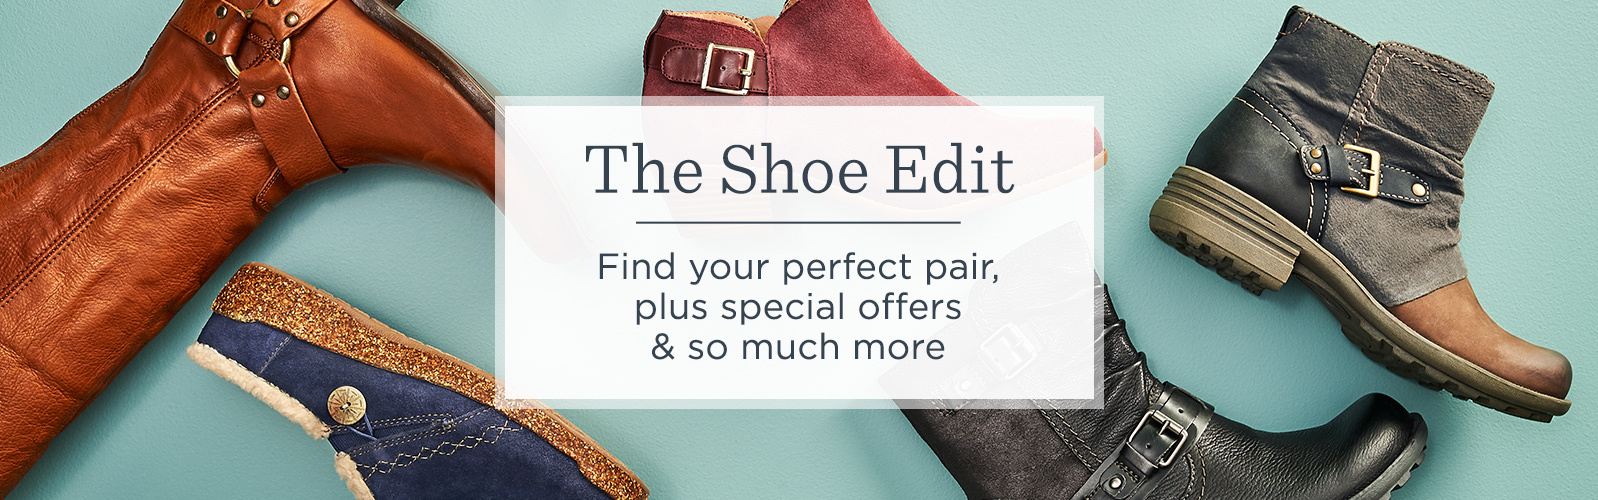 The Shoe Edit.  Find your perfect pair, plus special offers & so much more